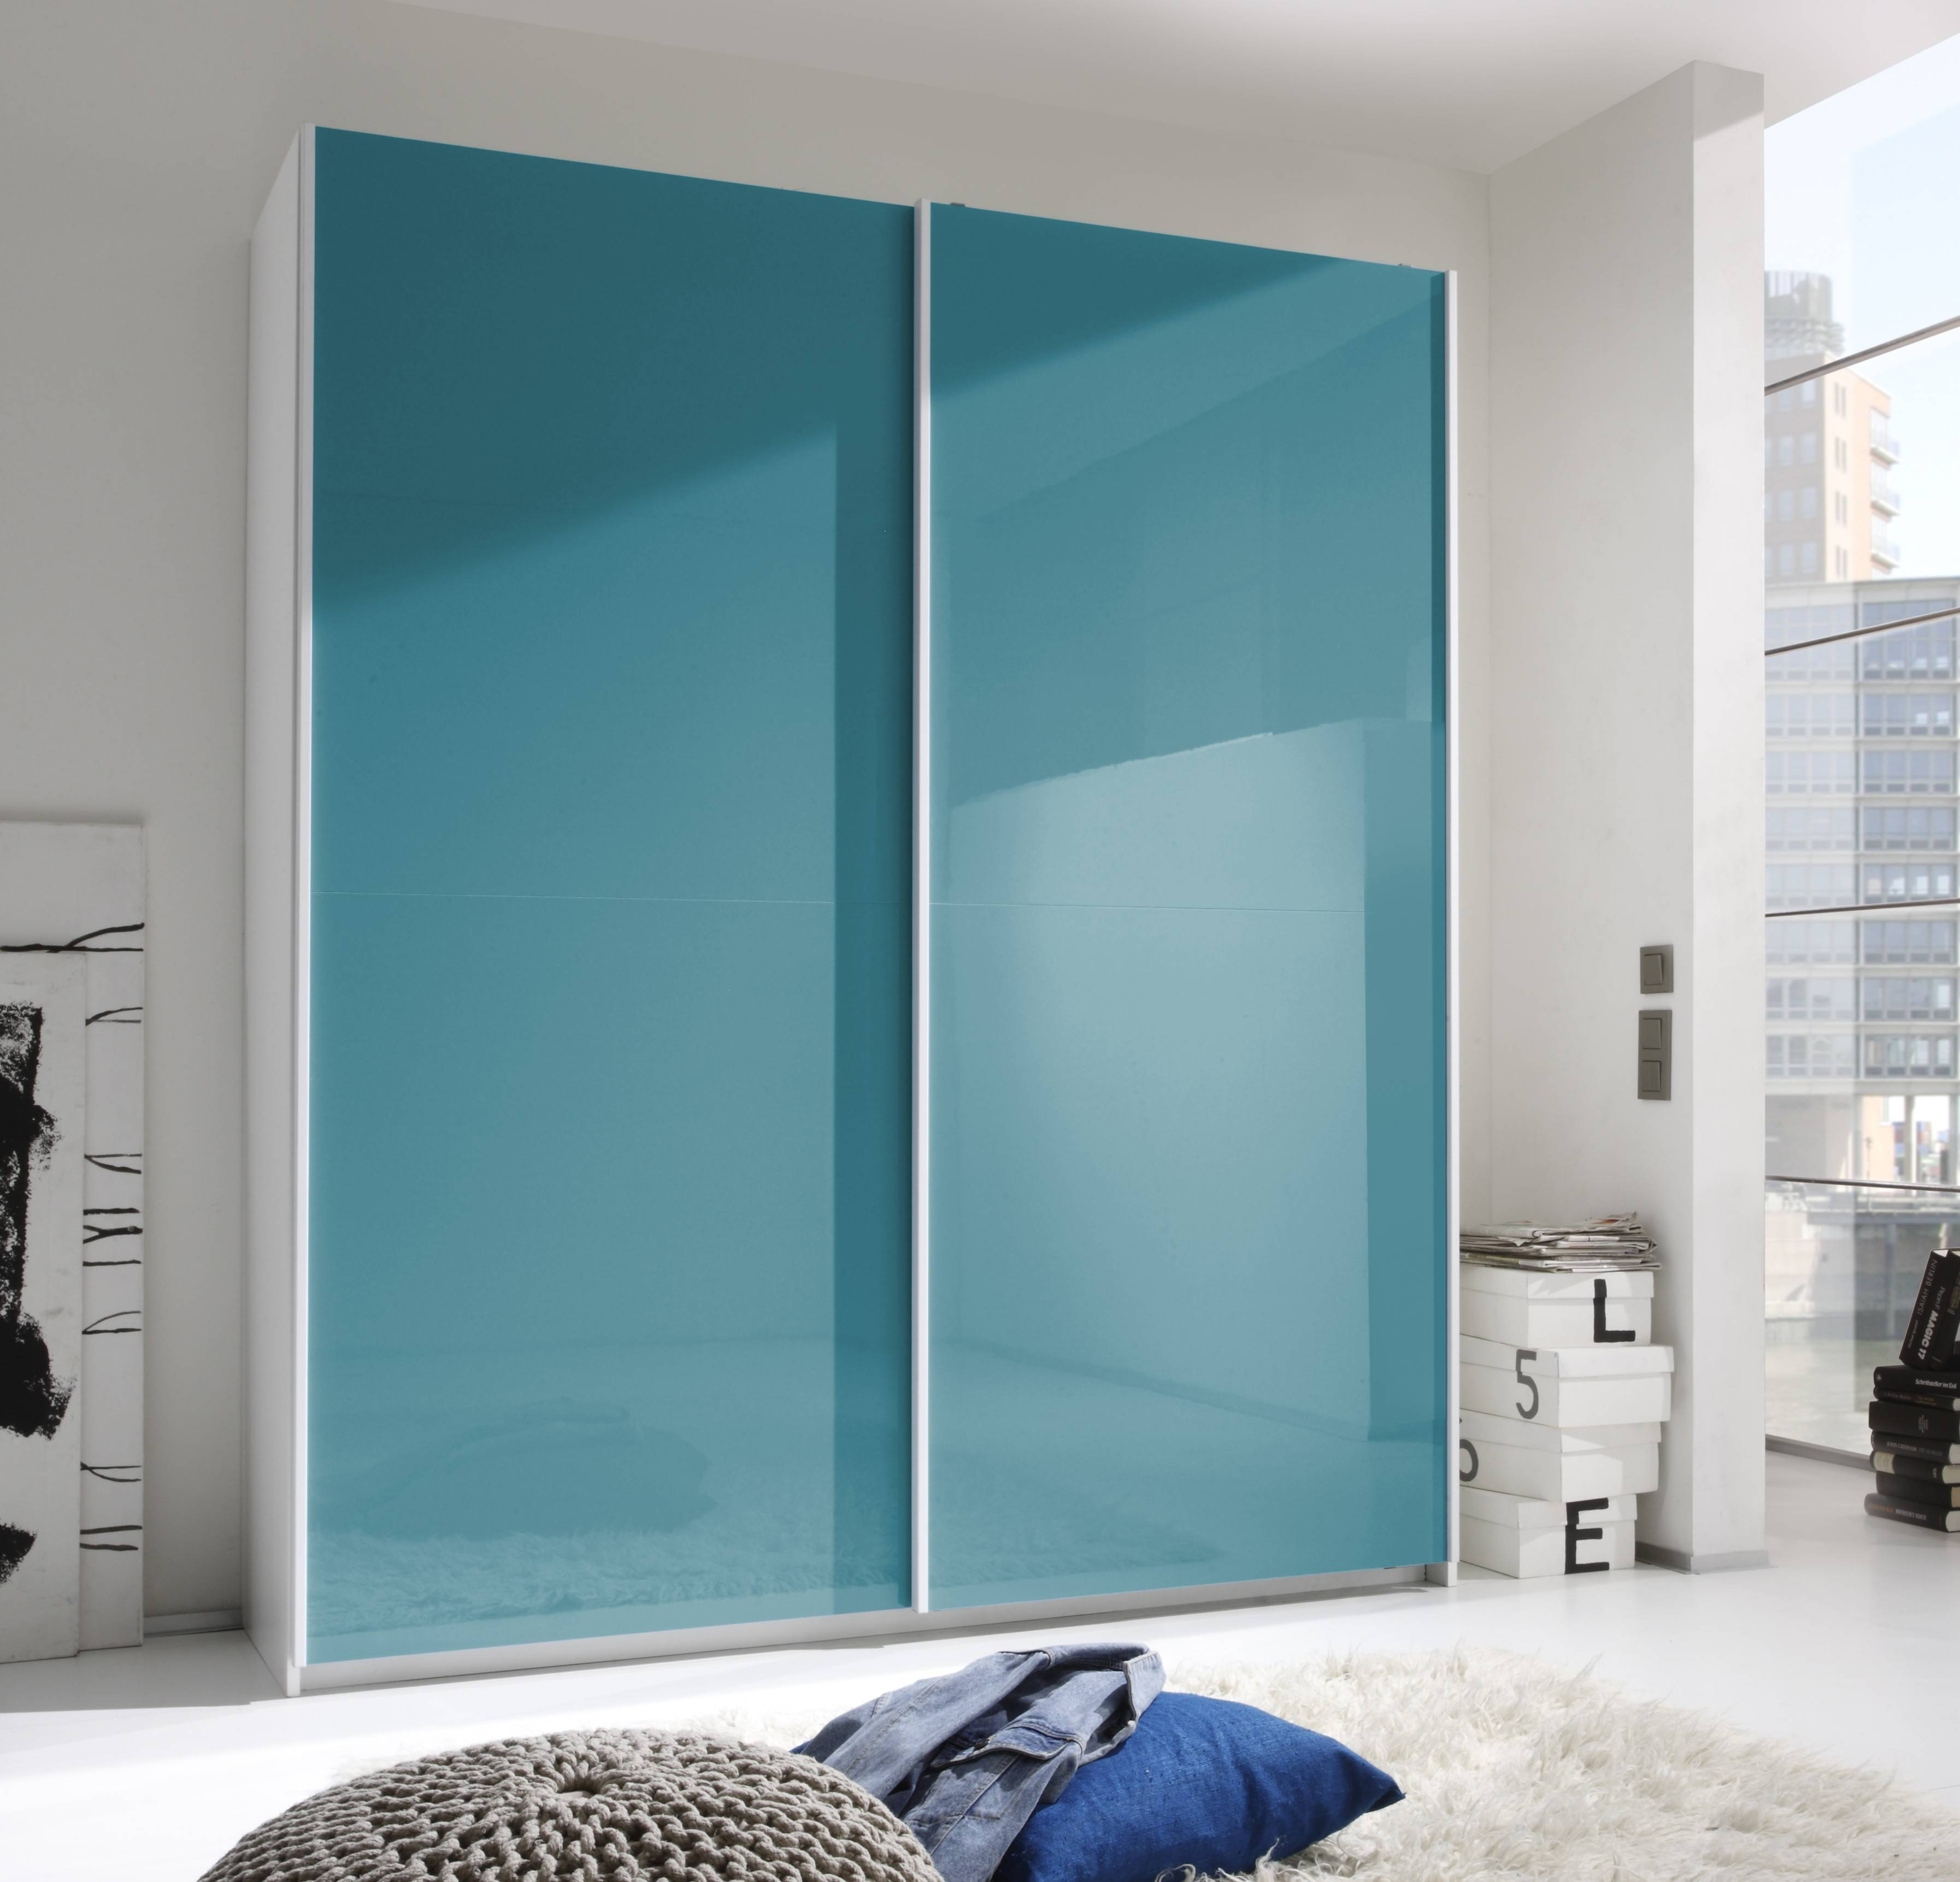 Smart Wardrobe W/2 Sliding Doors, Turquoise Buy Online At Best with regard to Wardrobes With 2 Sliding Doors (Image 15 of 15)